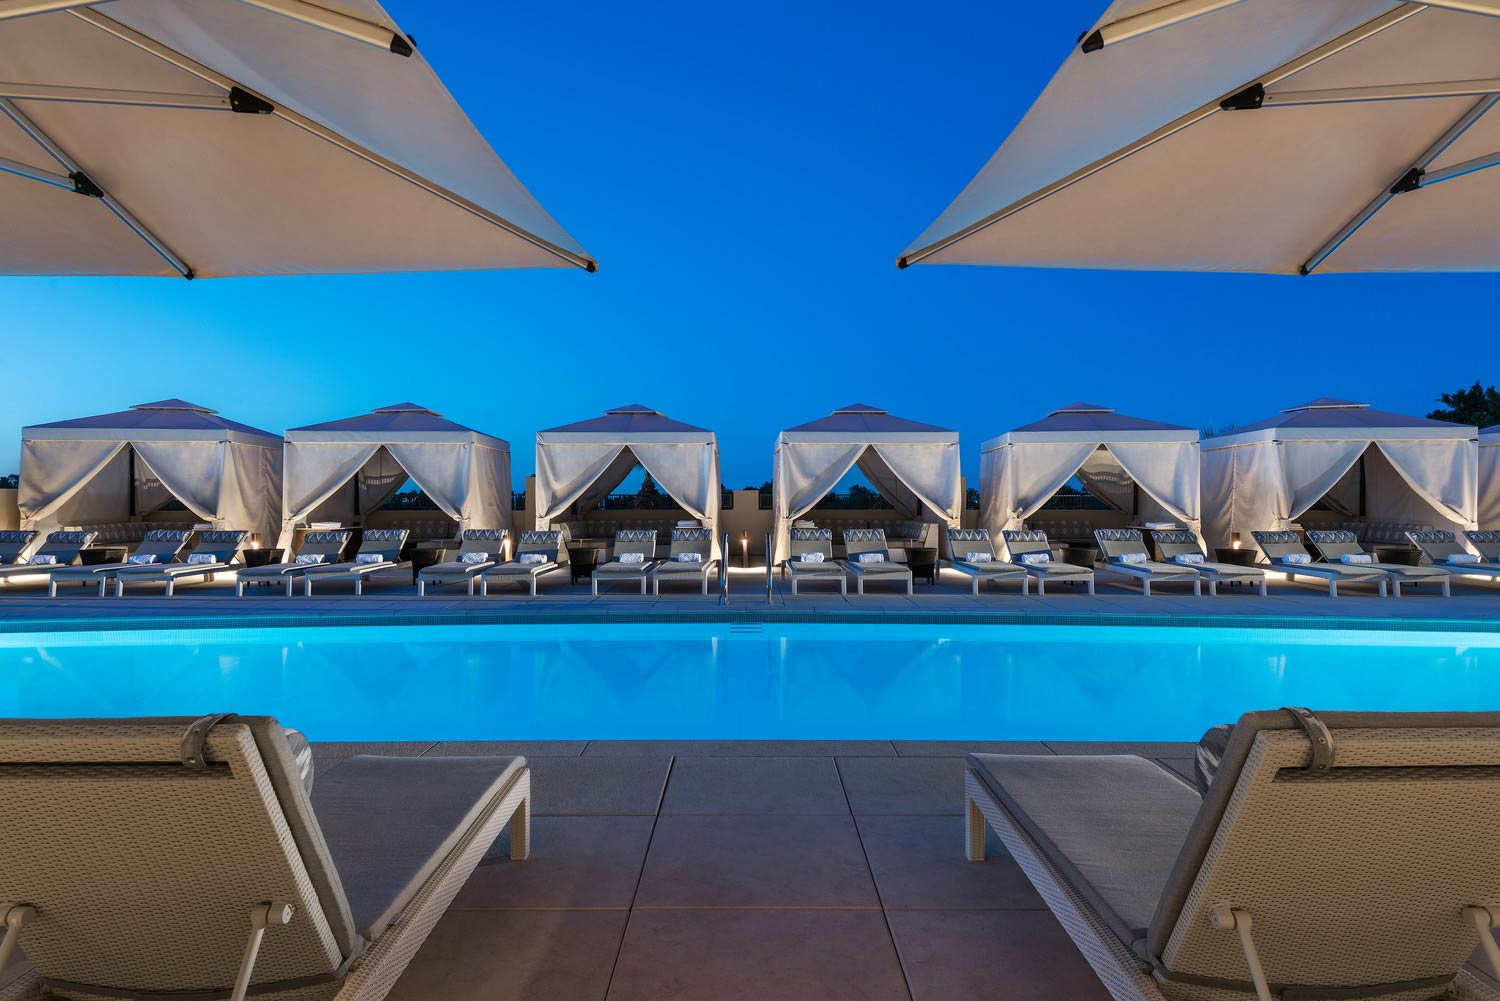 The Phoenician Rooftop Pool